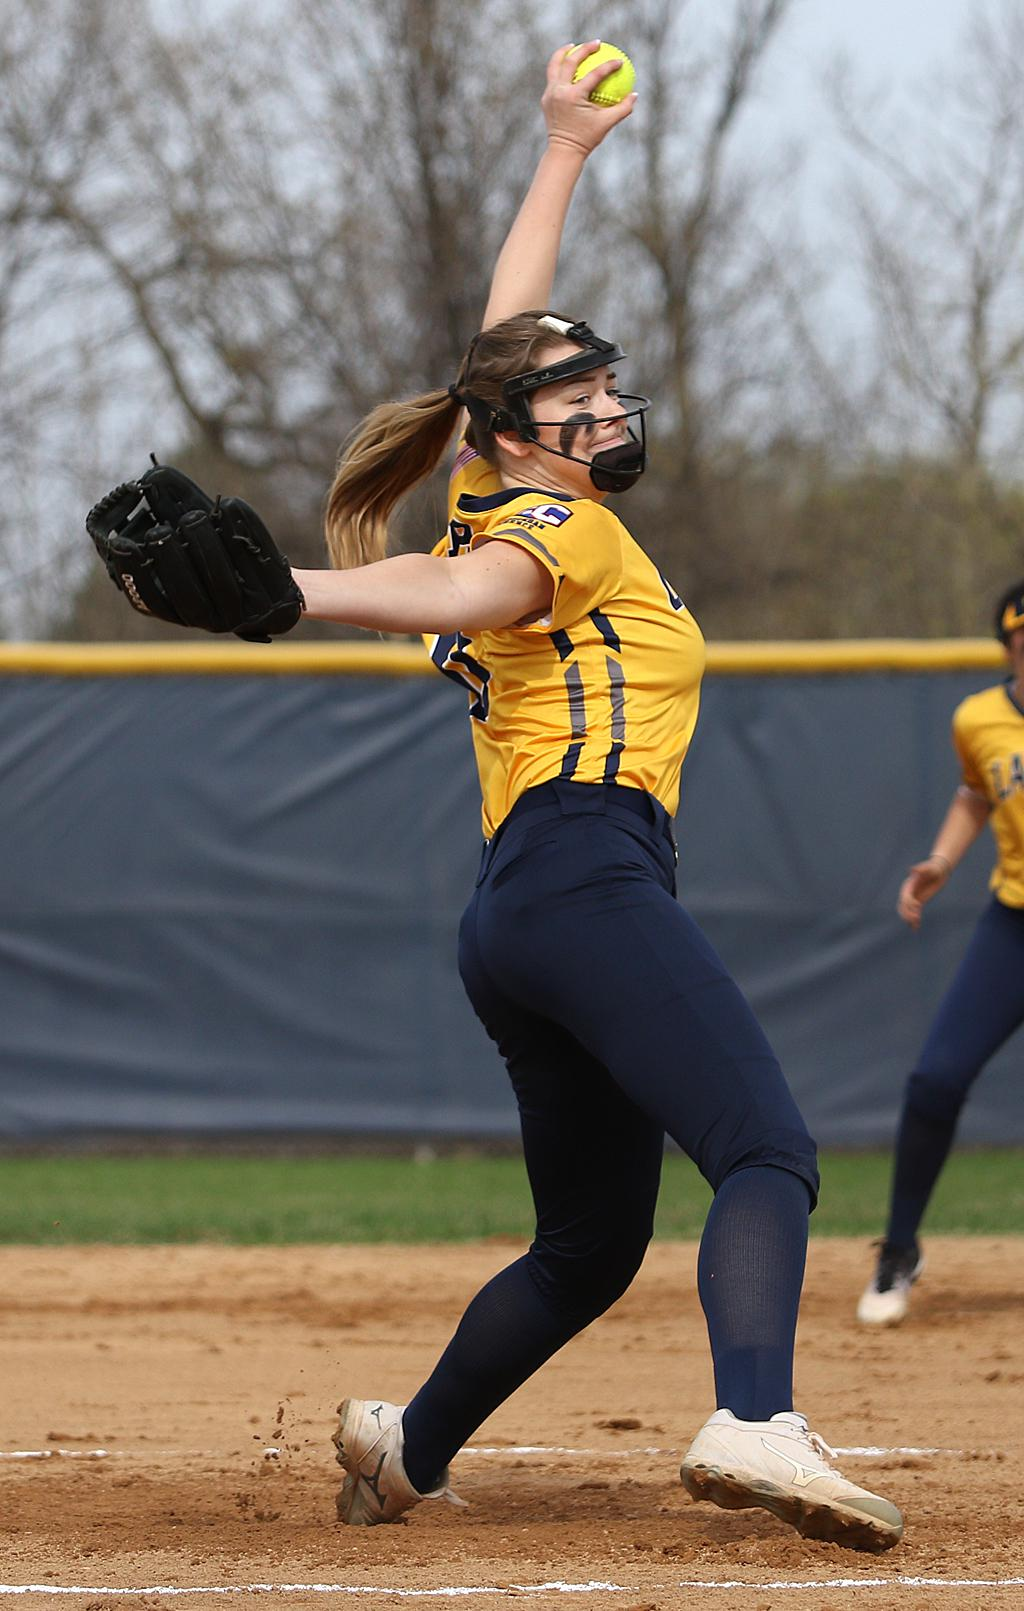 Prior Lake's Kailey Ahlstrom earned a complete-game shutout against conference rival Farmington. The Lakers eased past the Tigers 4-0 on Wednesday night at Prior Lake High School. Photo by Cheryl Myers, SportsEngine